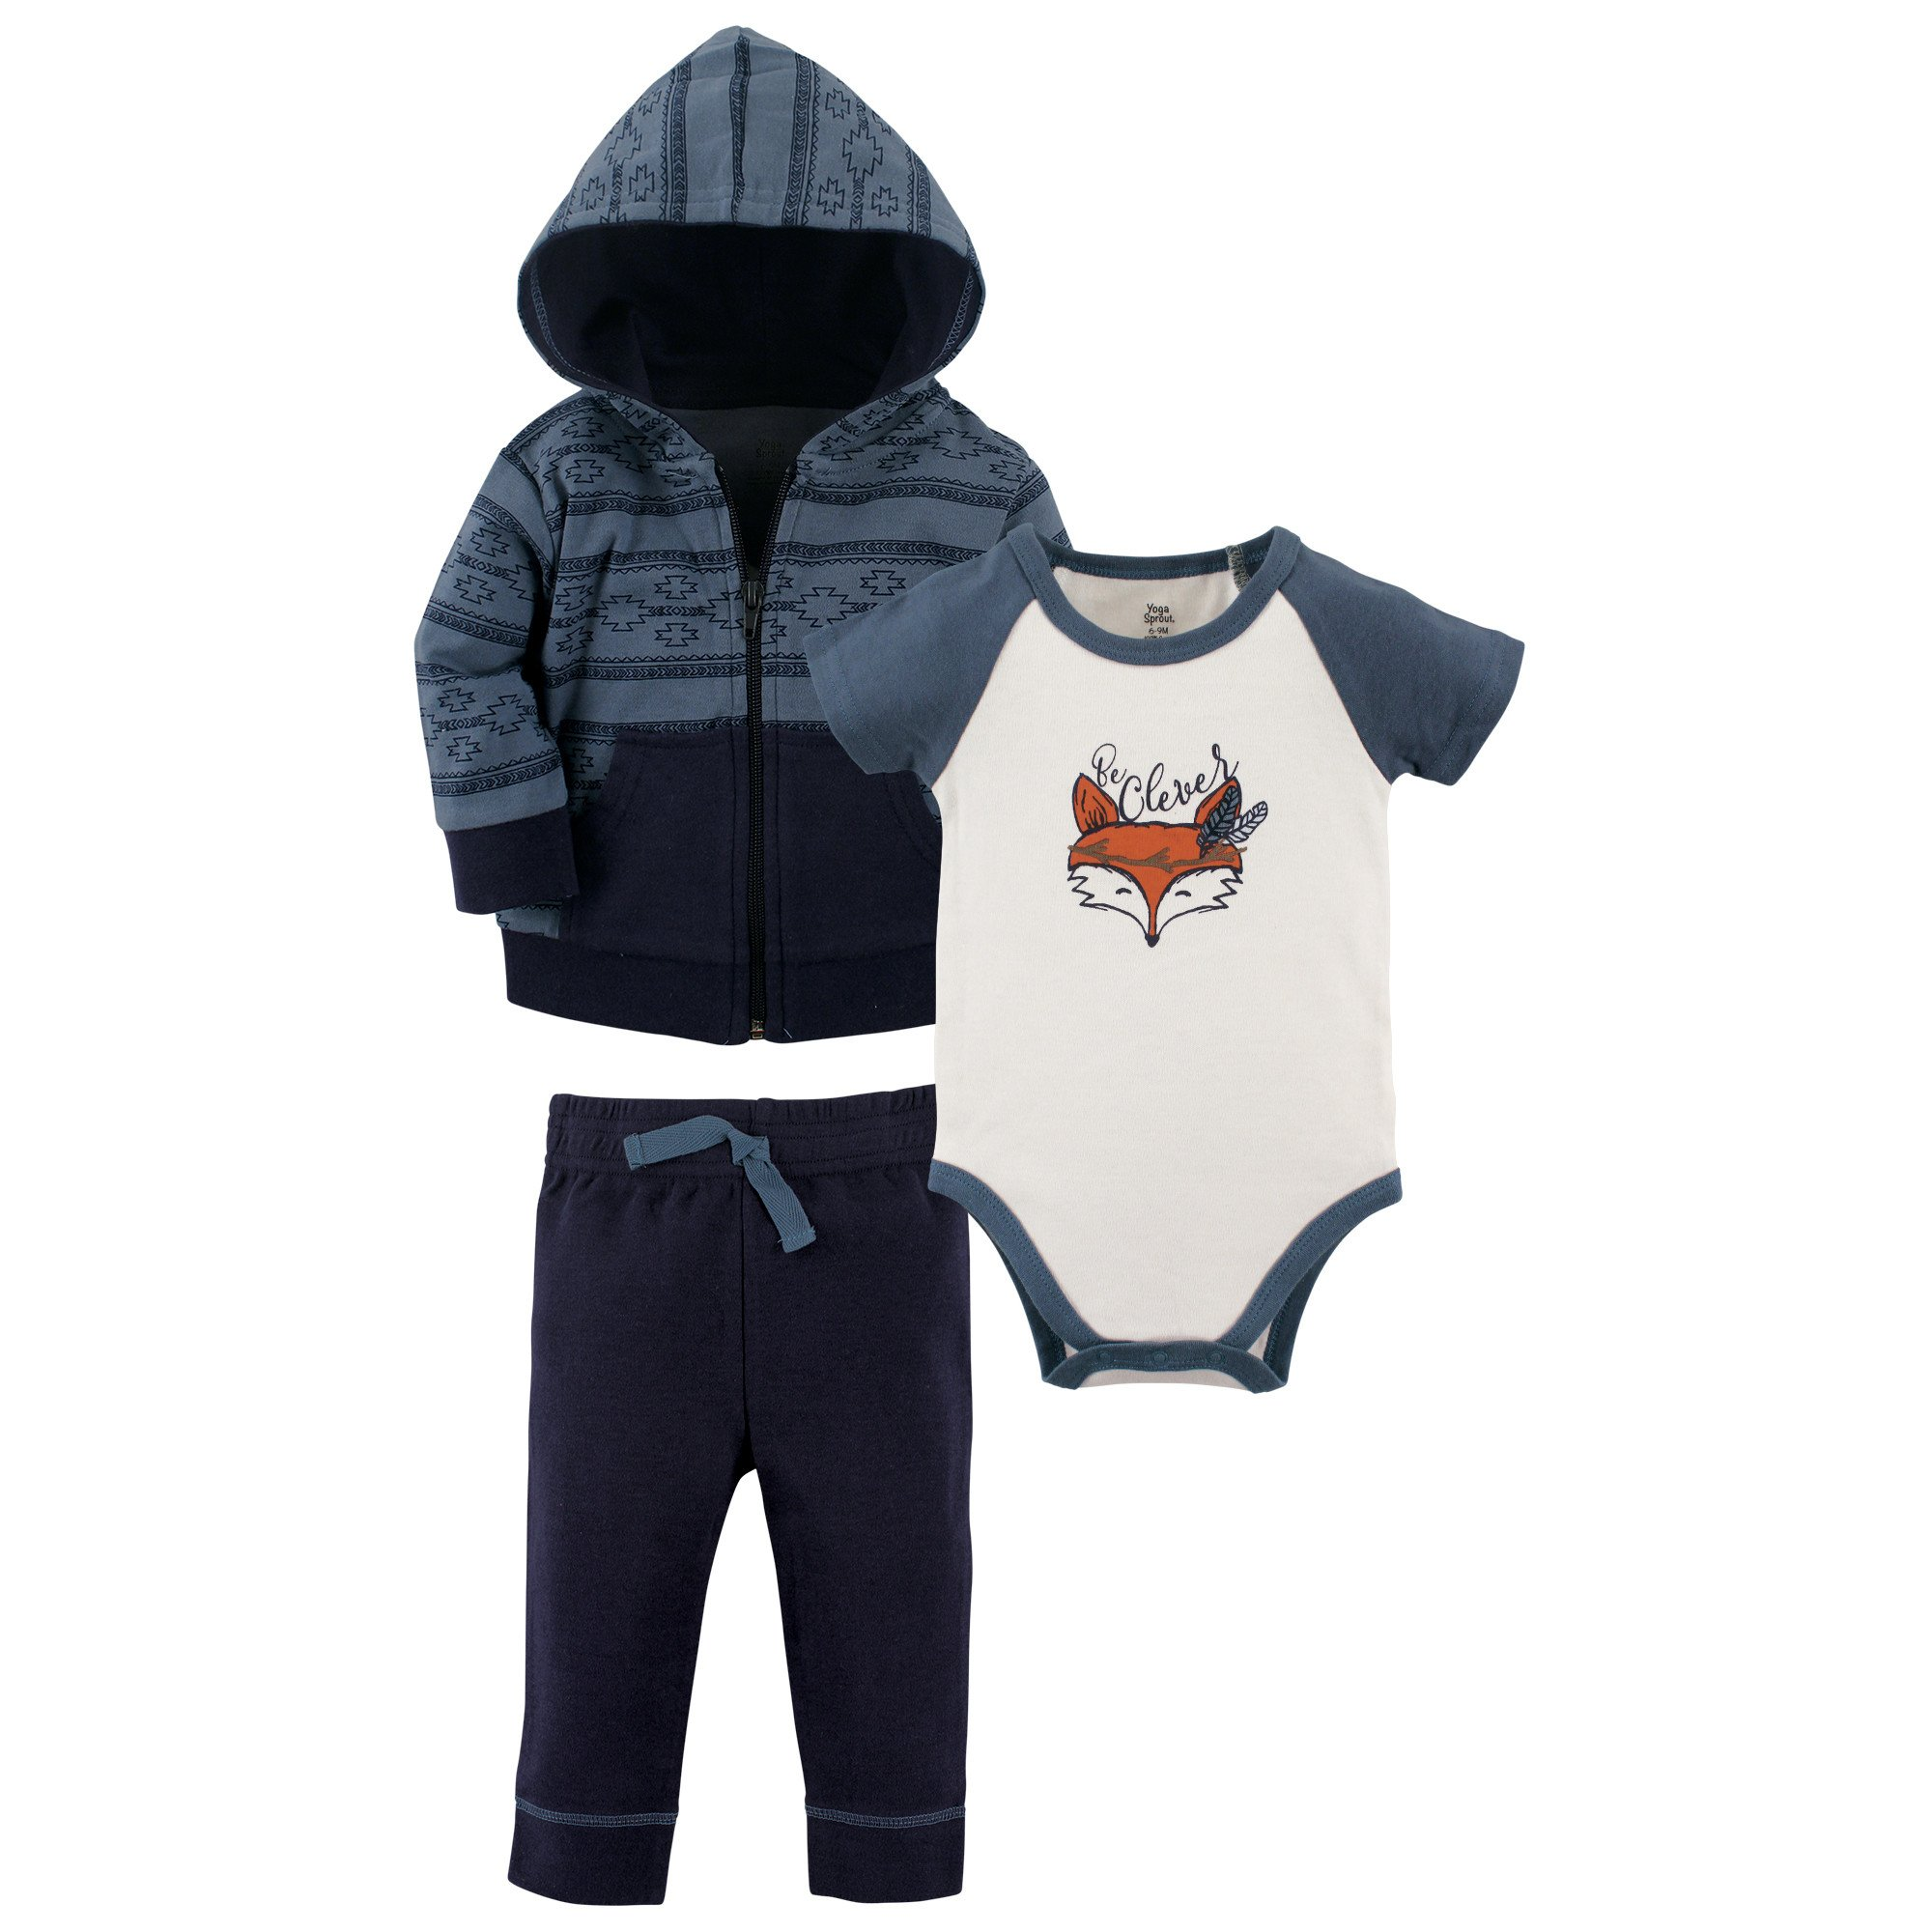 Best Rated In Baby Boys Layette Sets Helpful Customer Reviews Mom N Bab Sweater Orange Fox Yoga Sprout Infant 3 Piece Jacket Top And Pant Set Be Clever